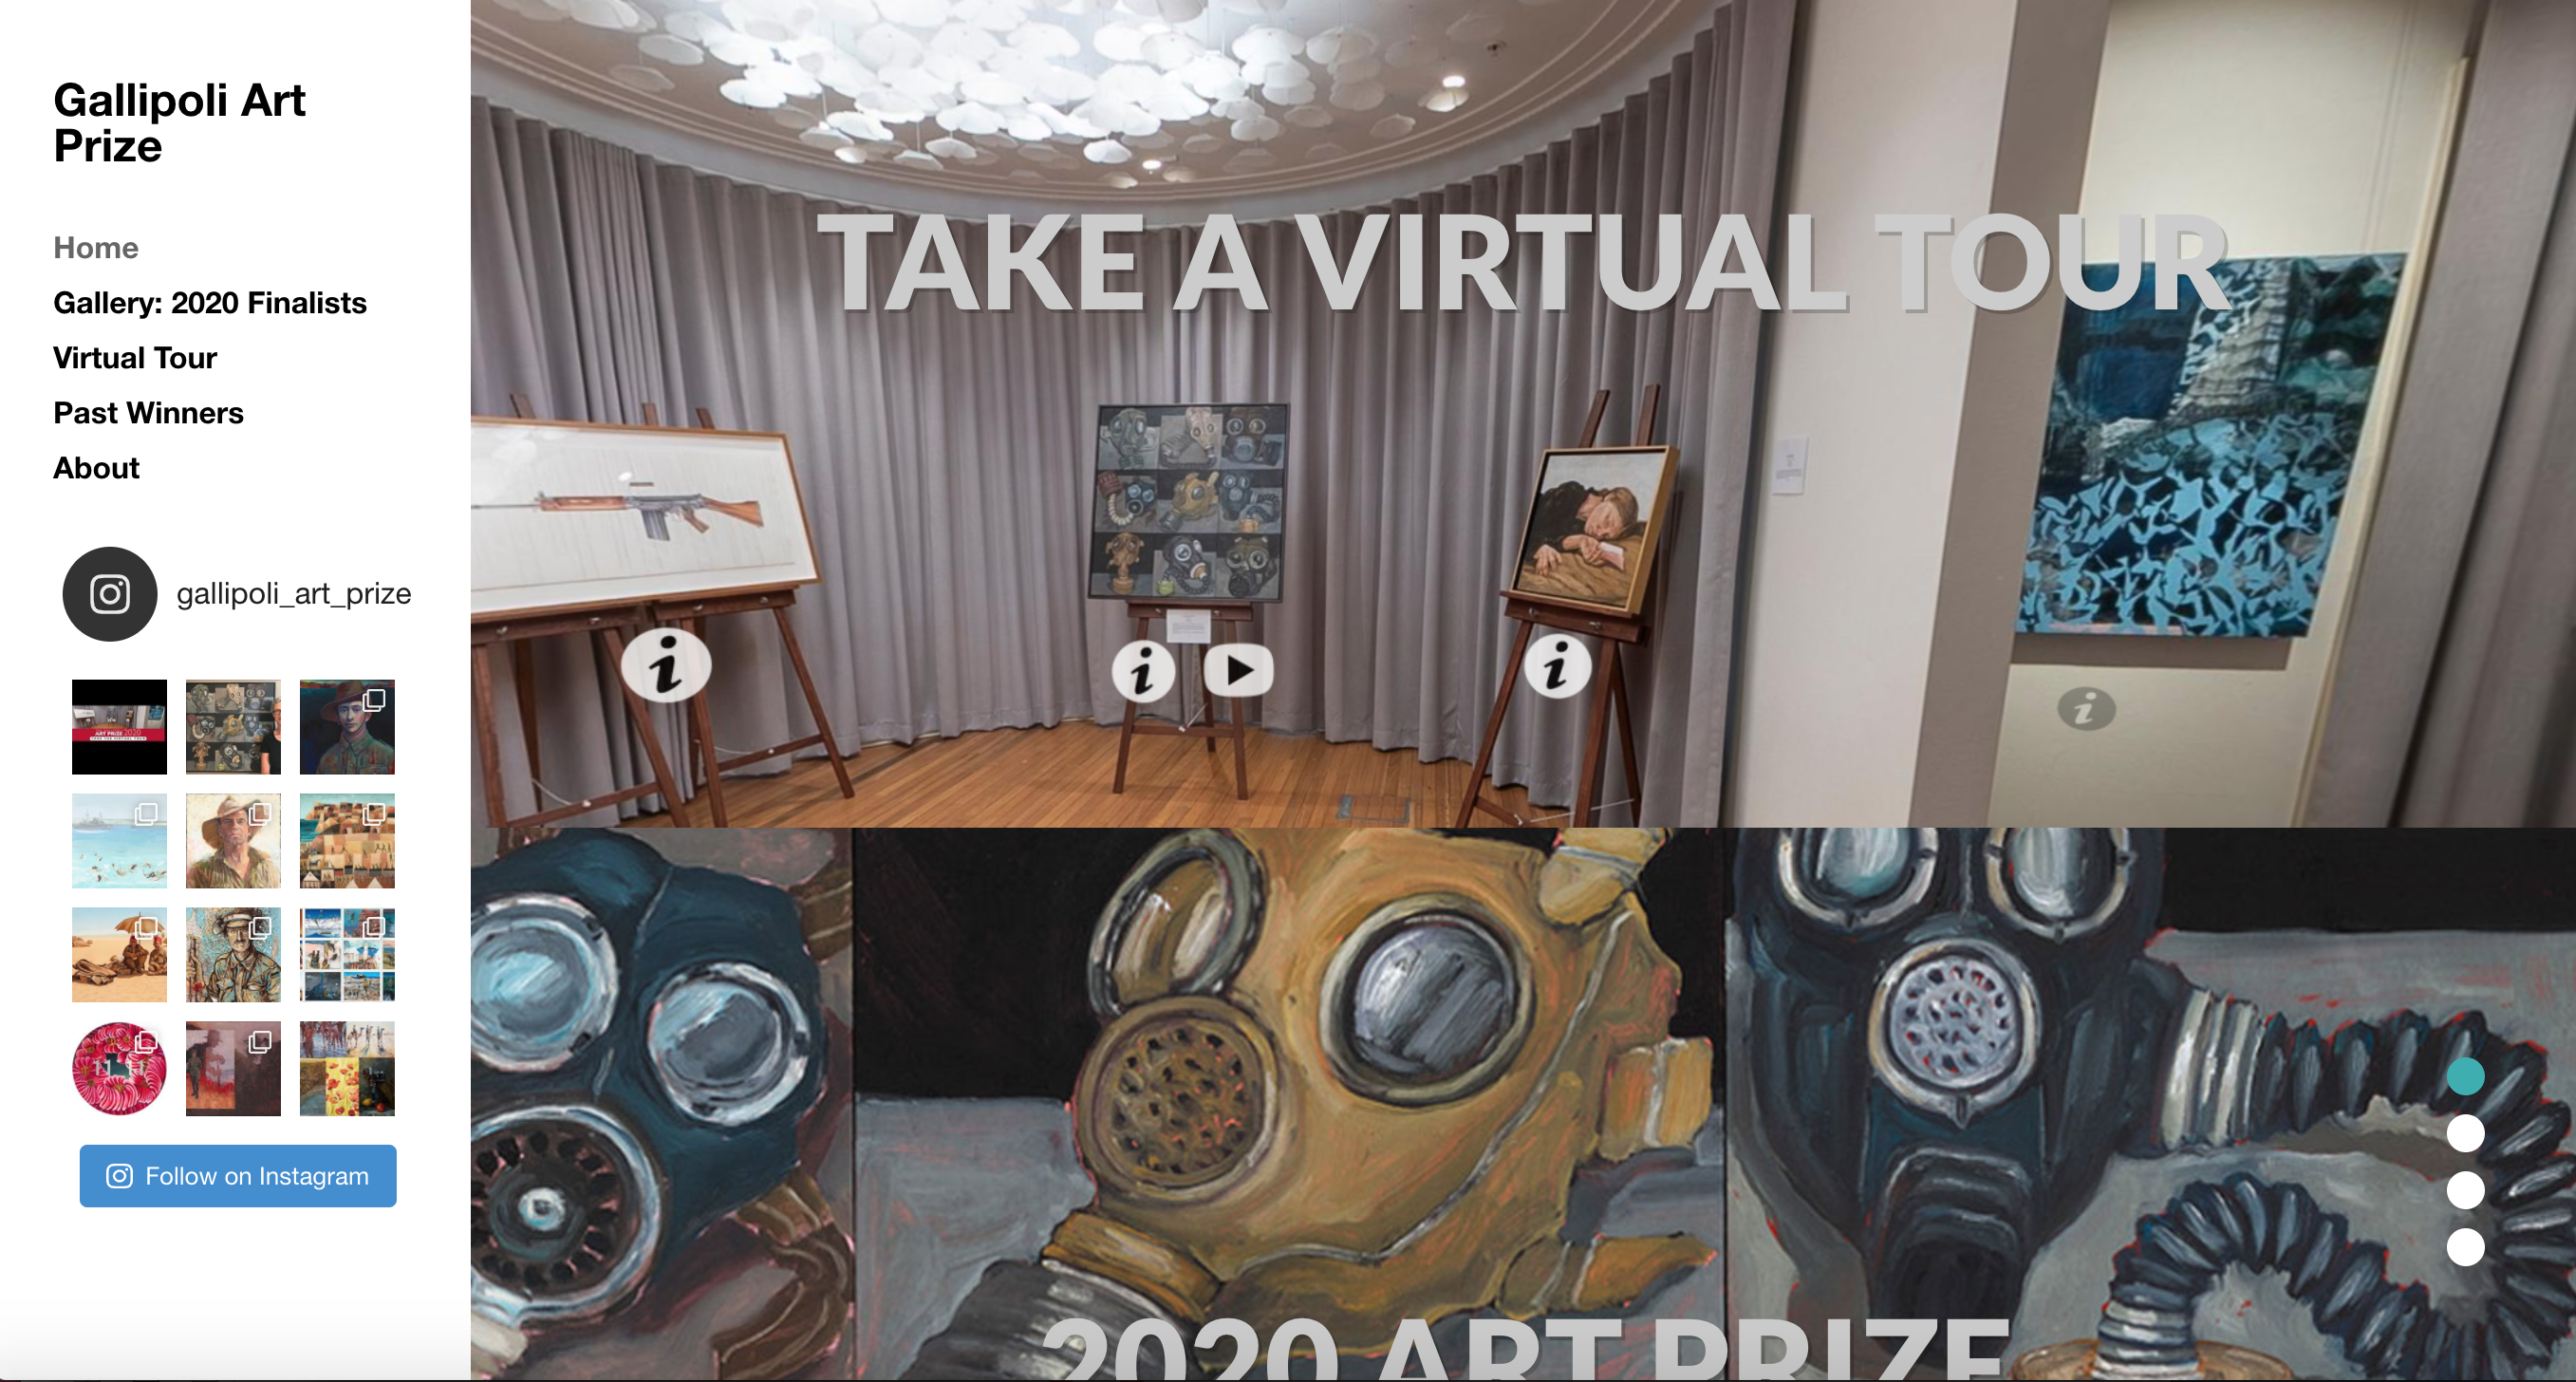 Screen view of Gallipoli Art Prize website and virtual tour